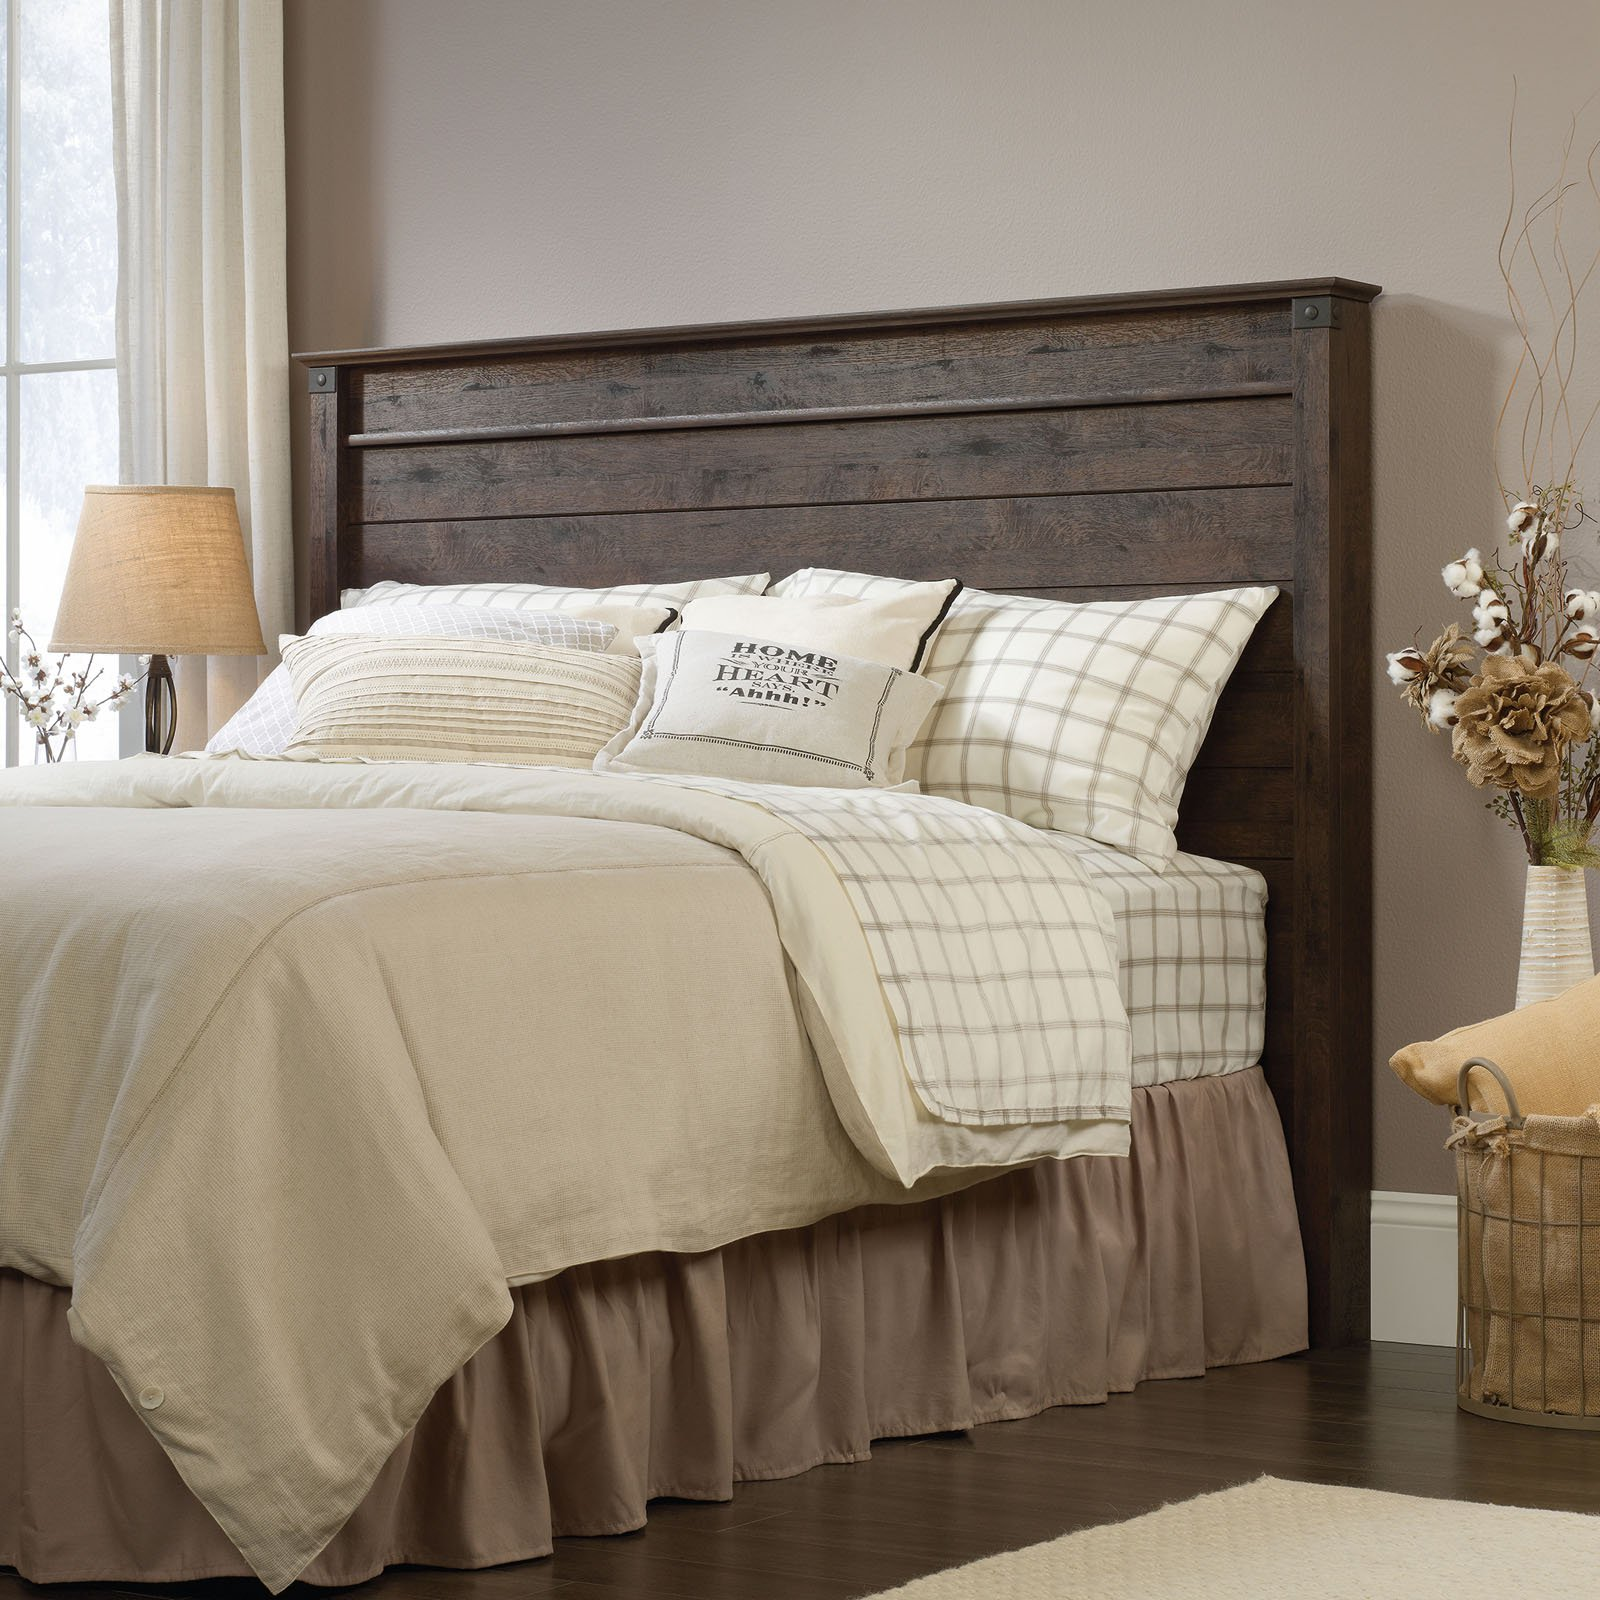 Sauder Carson Forge Full/Queen Panel Headboard, Coffee Oak Finish